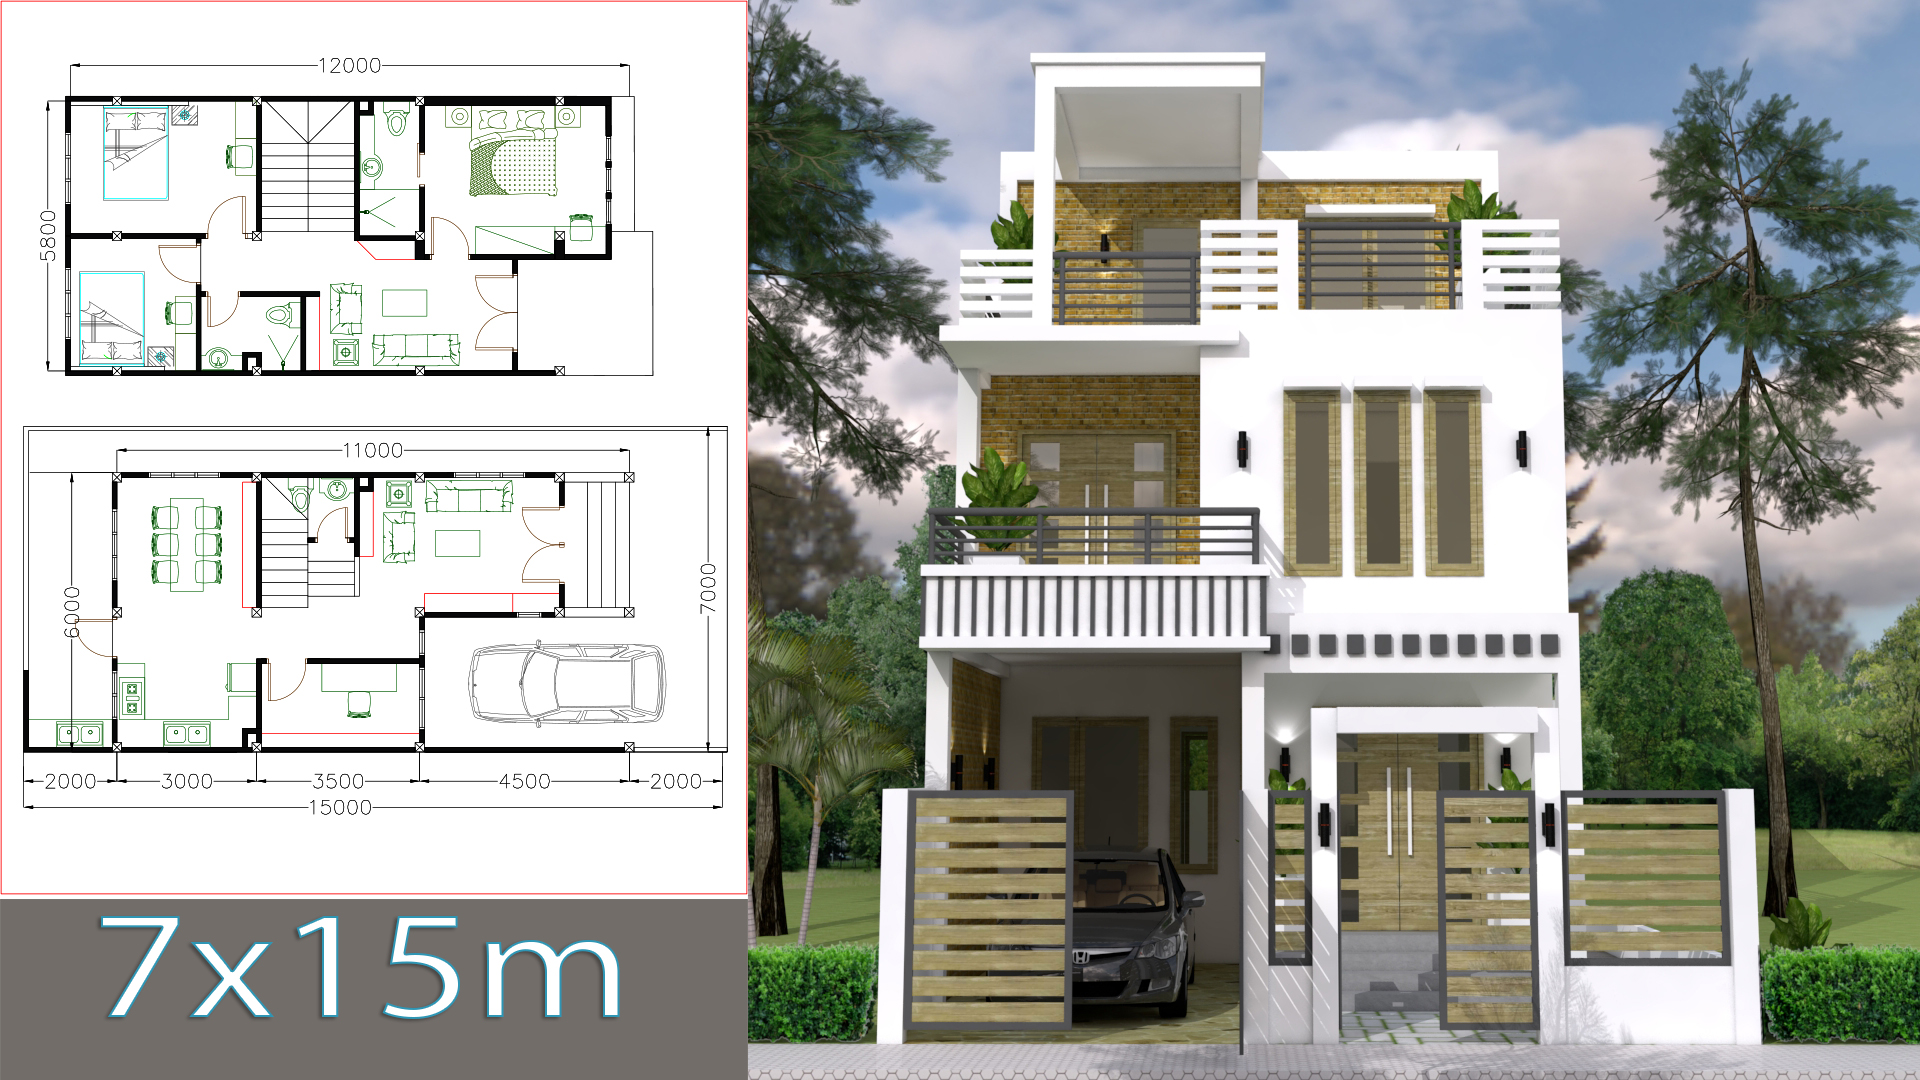 Home Design Plan 7x15m with 3 Bedrooms